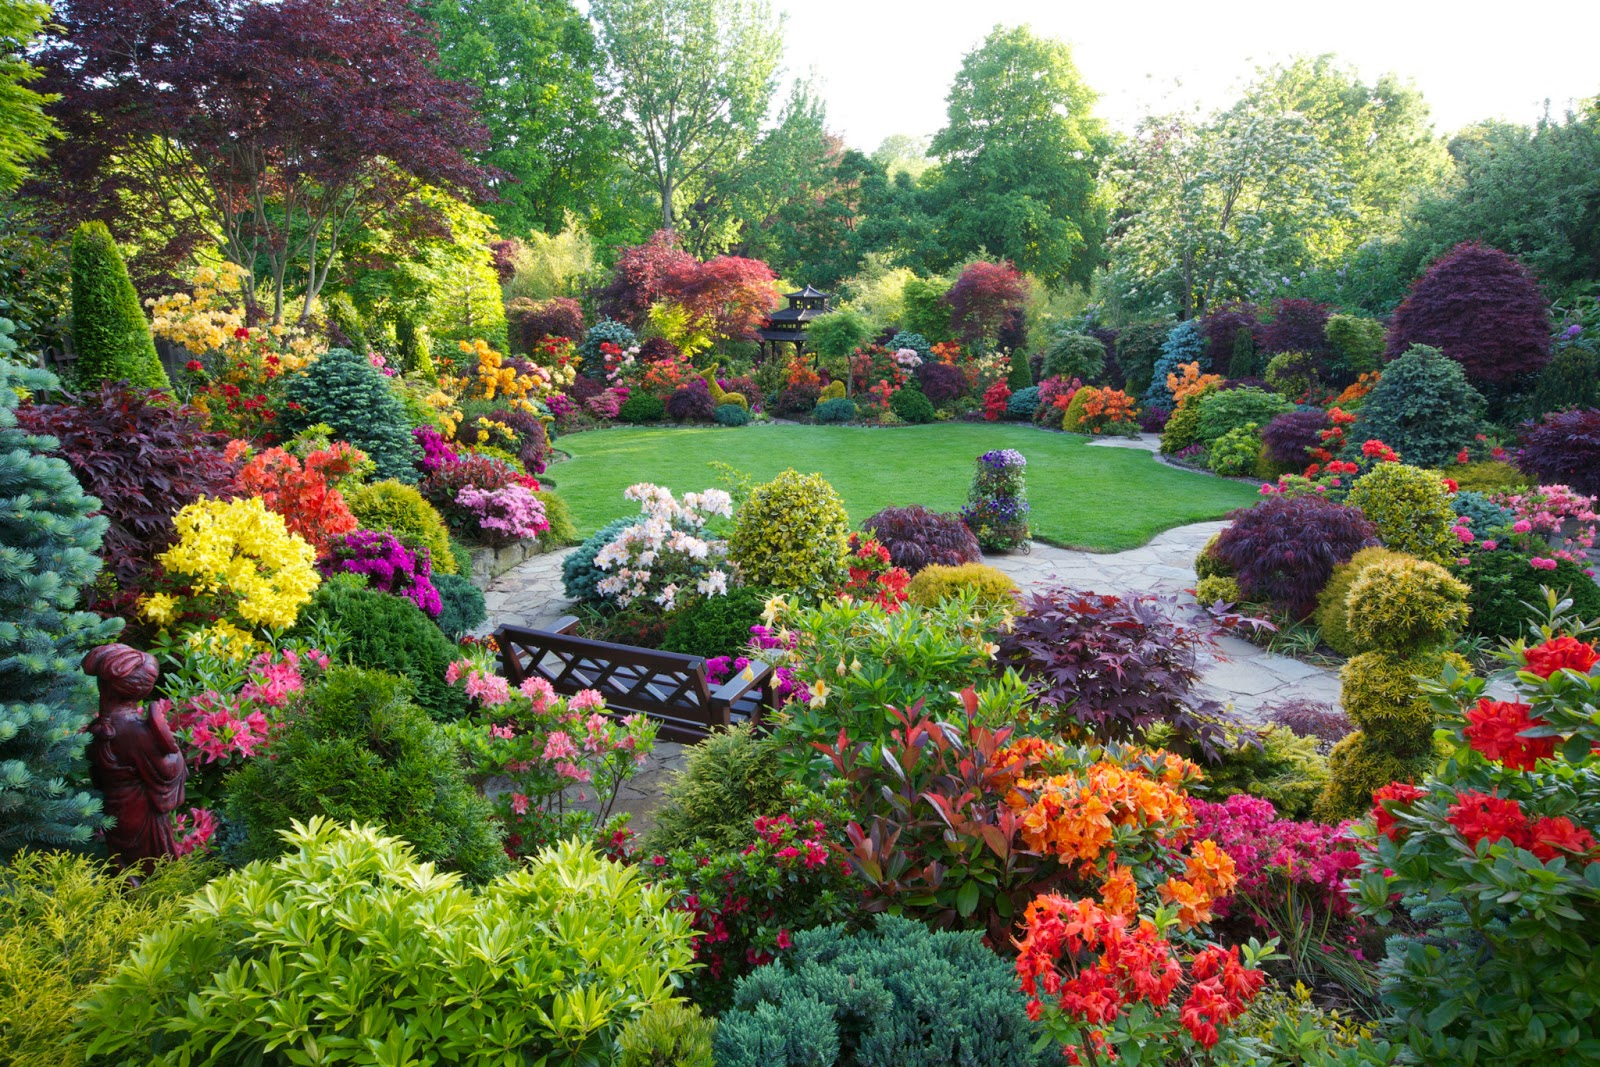 Drelis Gardens Four Seasons Garden The most beautiful